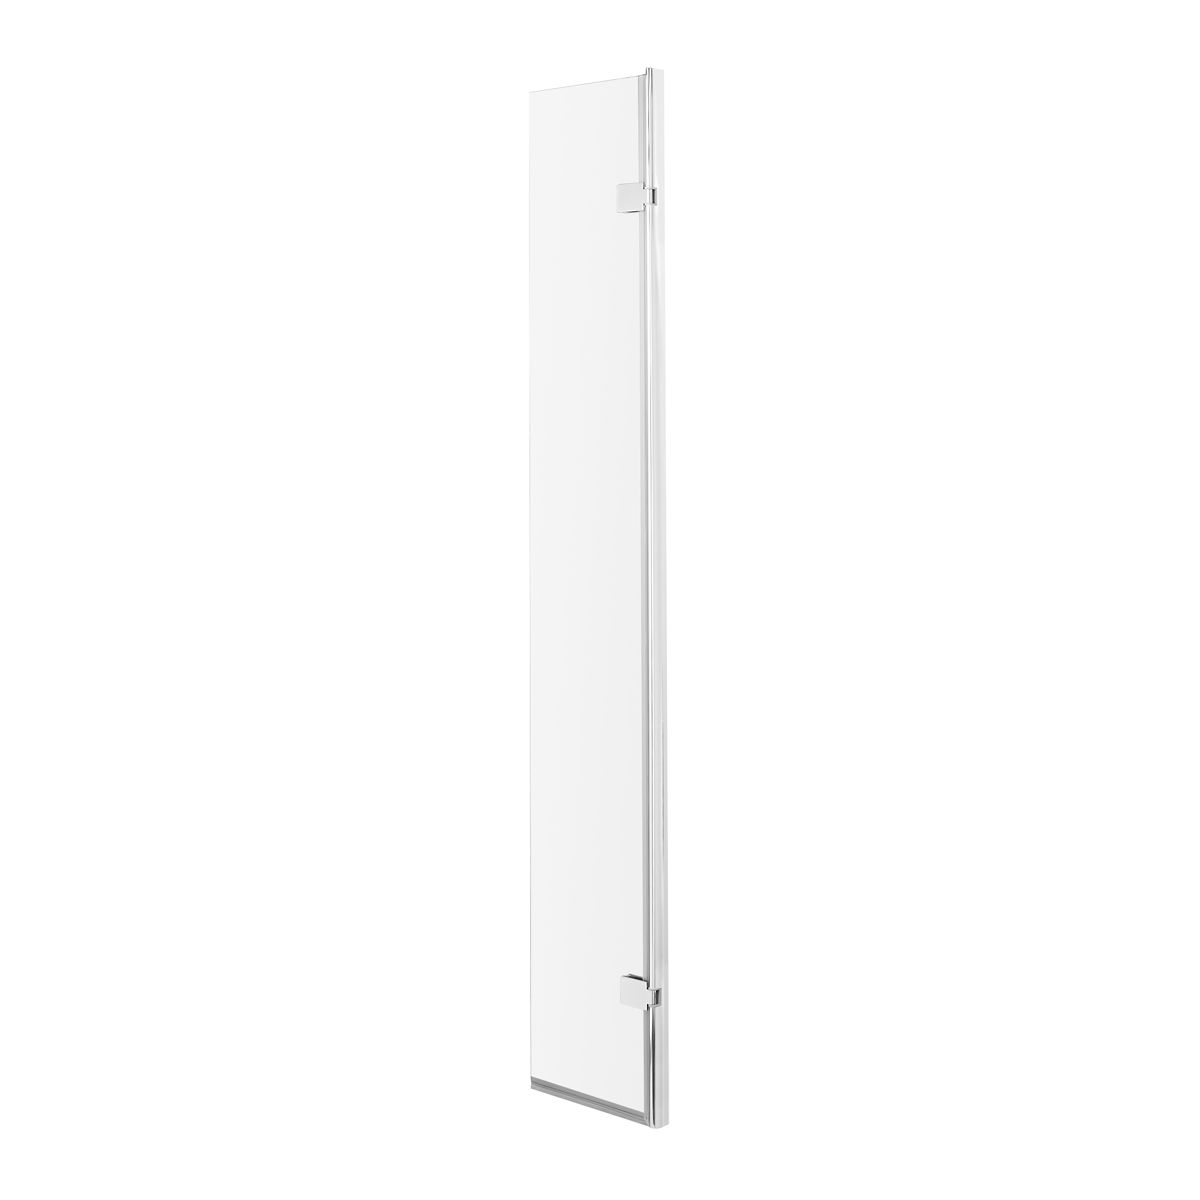 Hudson Reed Hinged Wet Room Return Panel